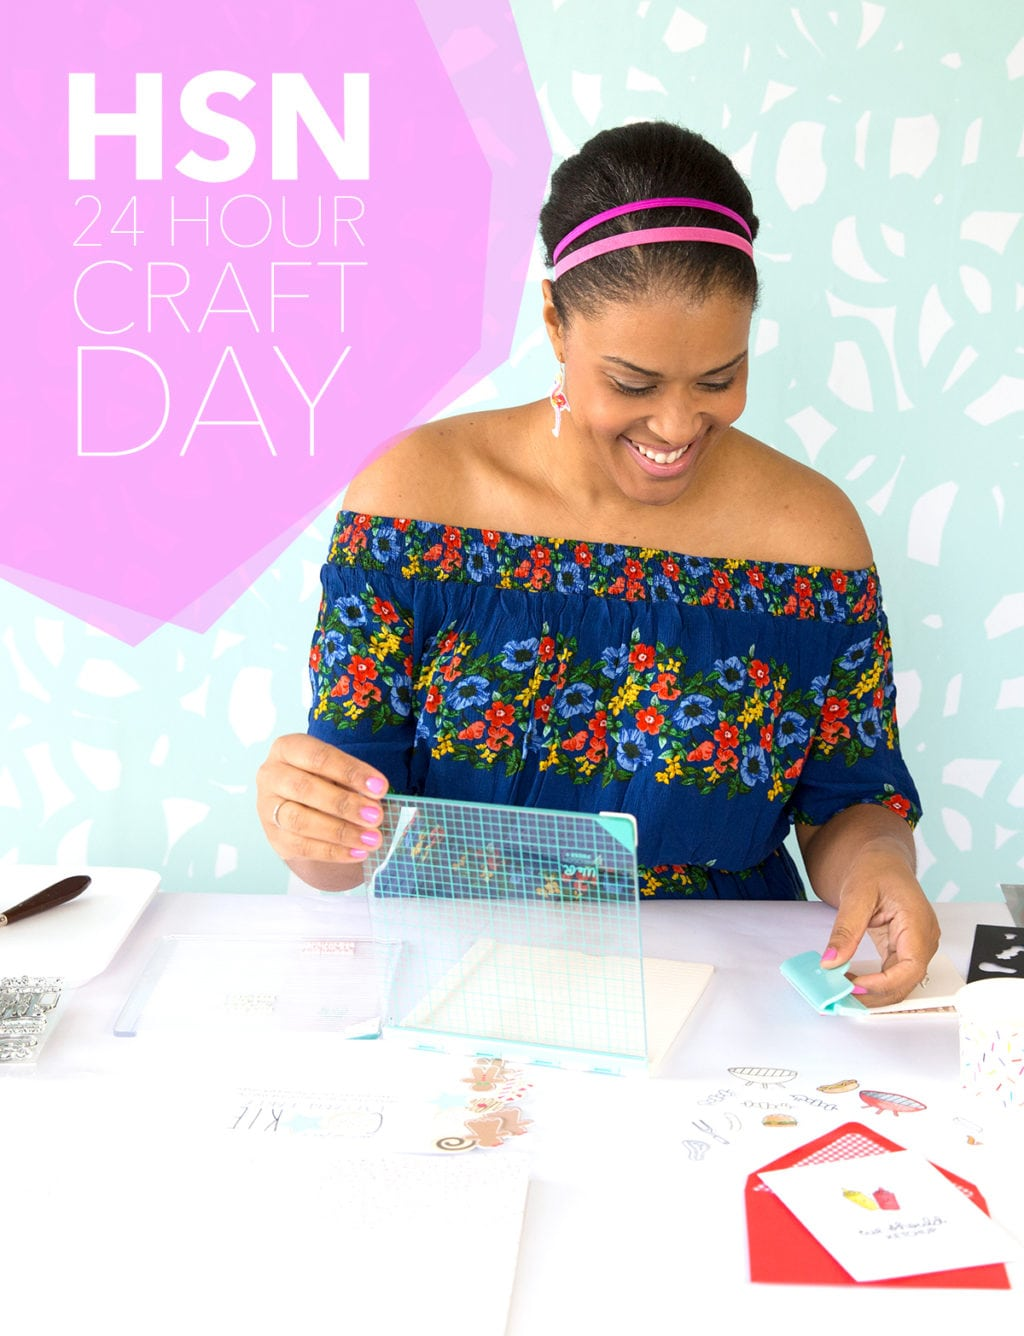 HSN 24 Hour Craft Day